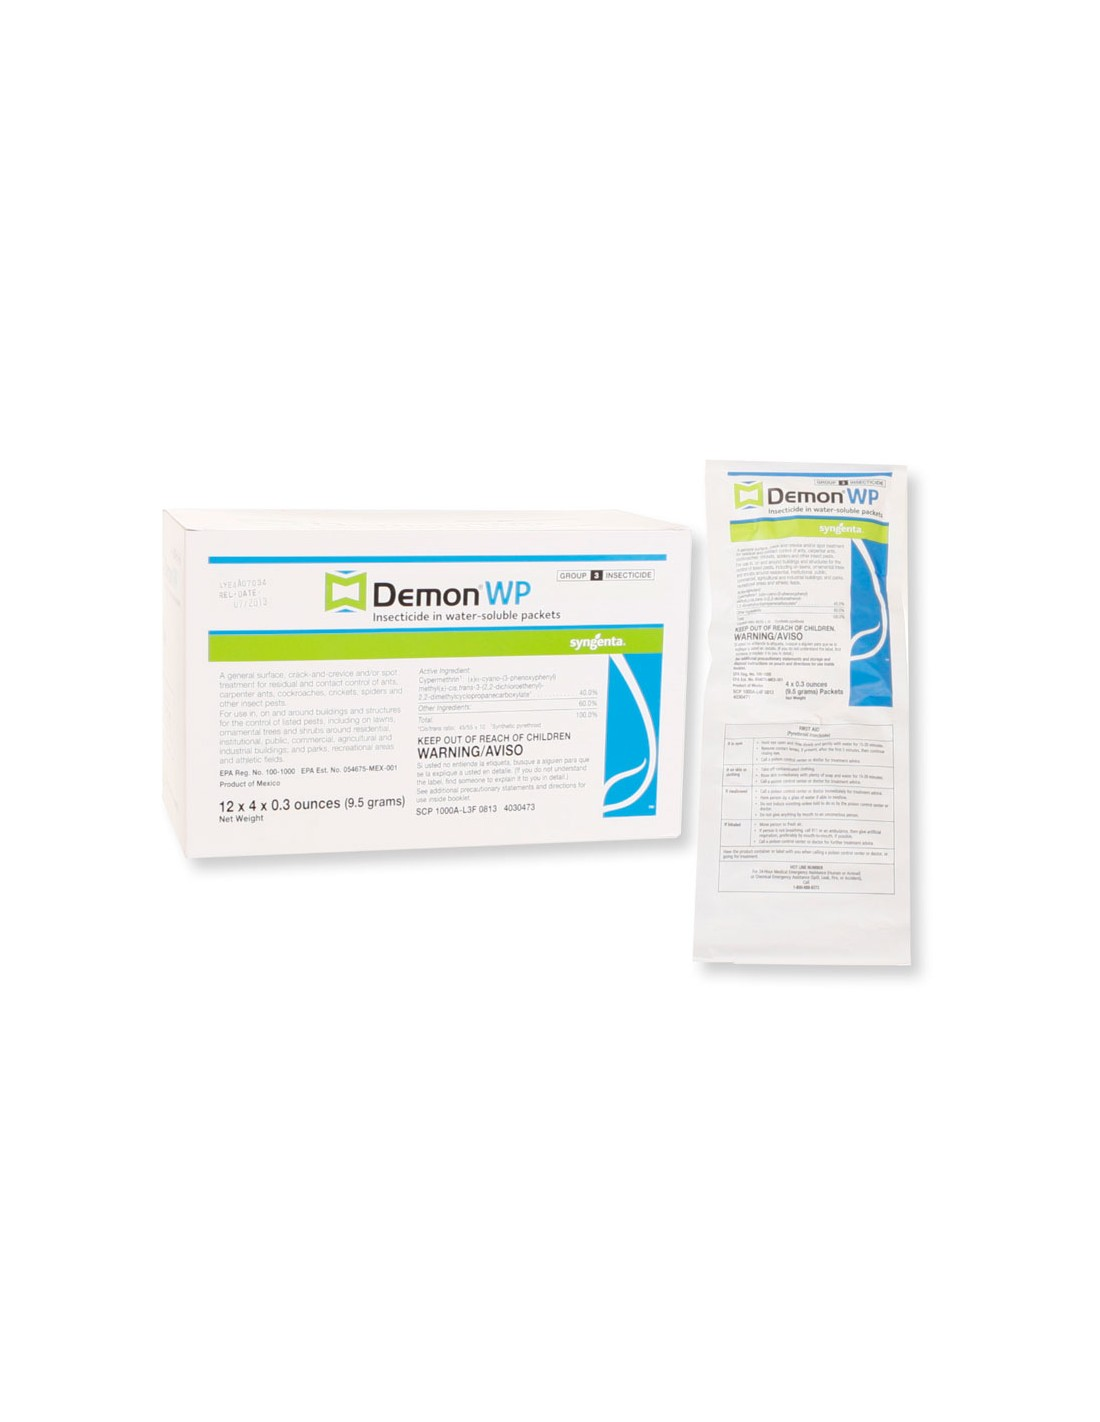 Can I use leftover demon in the sprayer?  Will it still be affective?